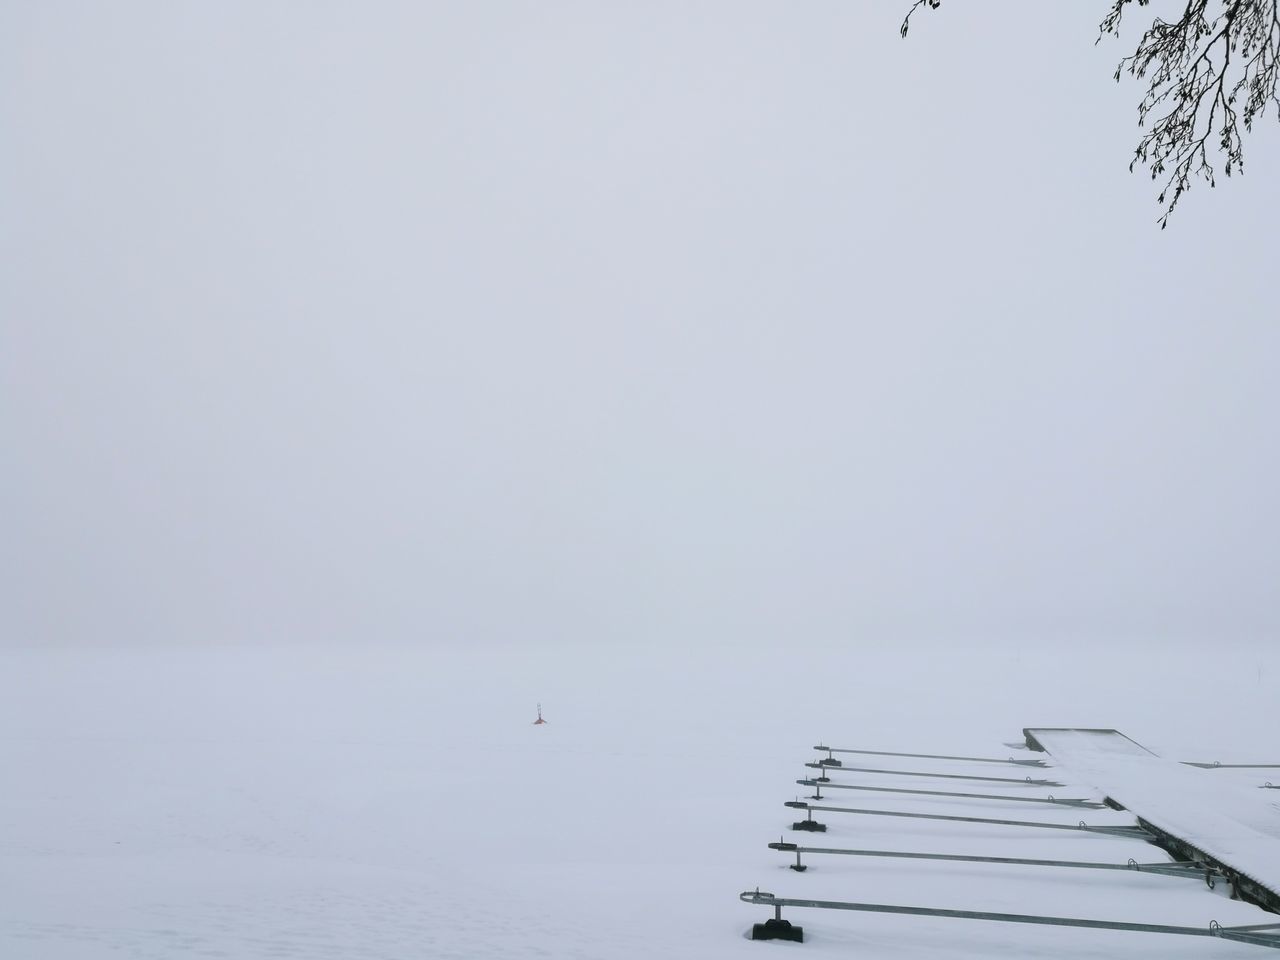 Water No People Outdoors Nature Sky Day EyeEmNewHere Finland Savonlinna Finland Finlande Finland Savonlinna Finland_photolovers FinlandsWinter Tunisia Finlande Finlandlovers Snowing Landscape Finland♥ Winter Beauty In Nature Cold Temperature Tranquility Tree Snow Nature Beach Branch